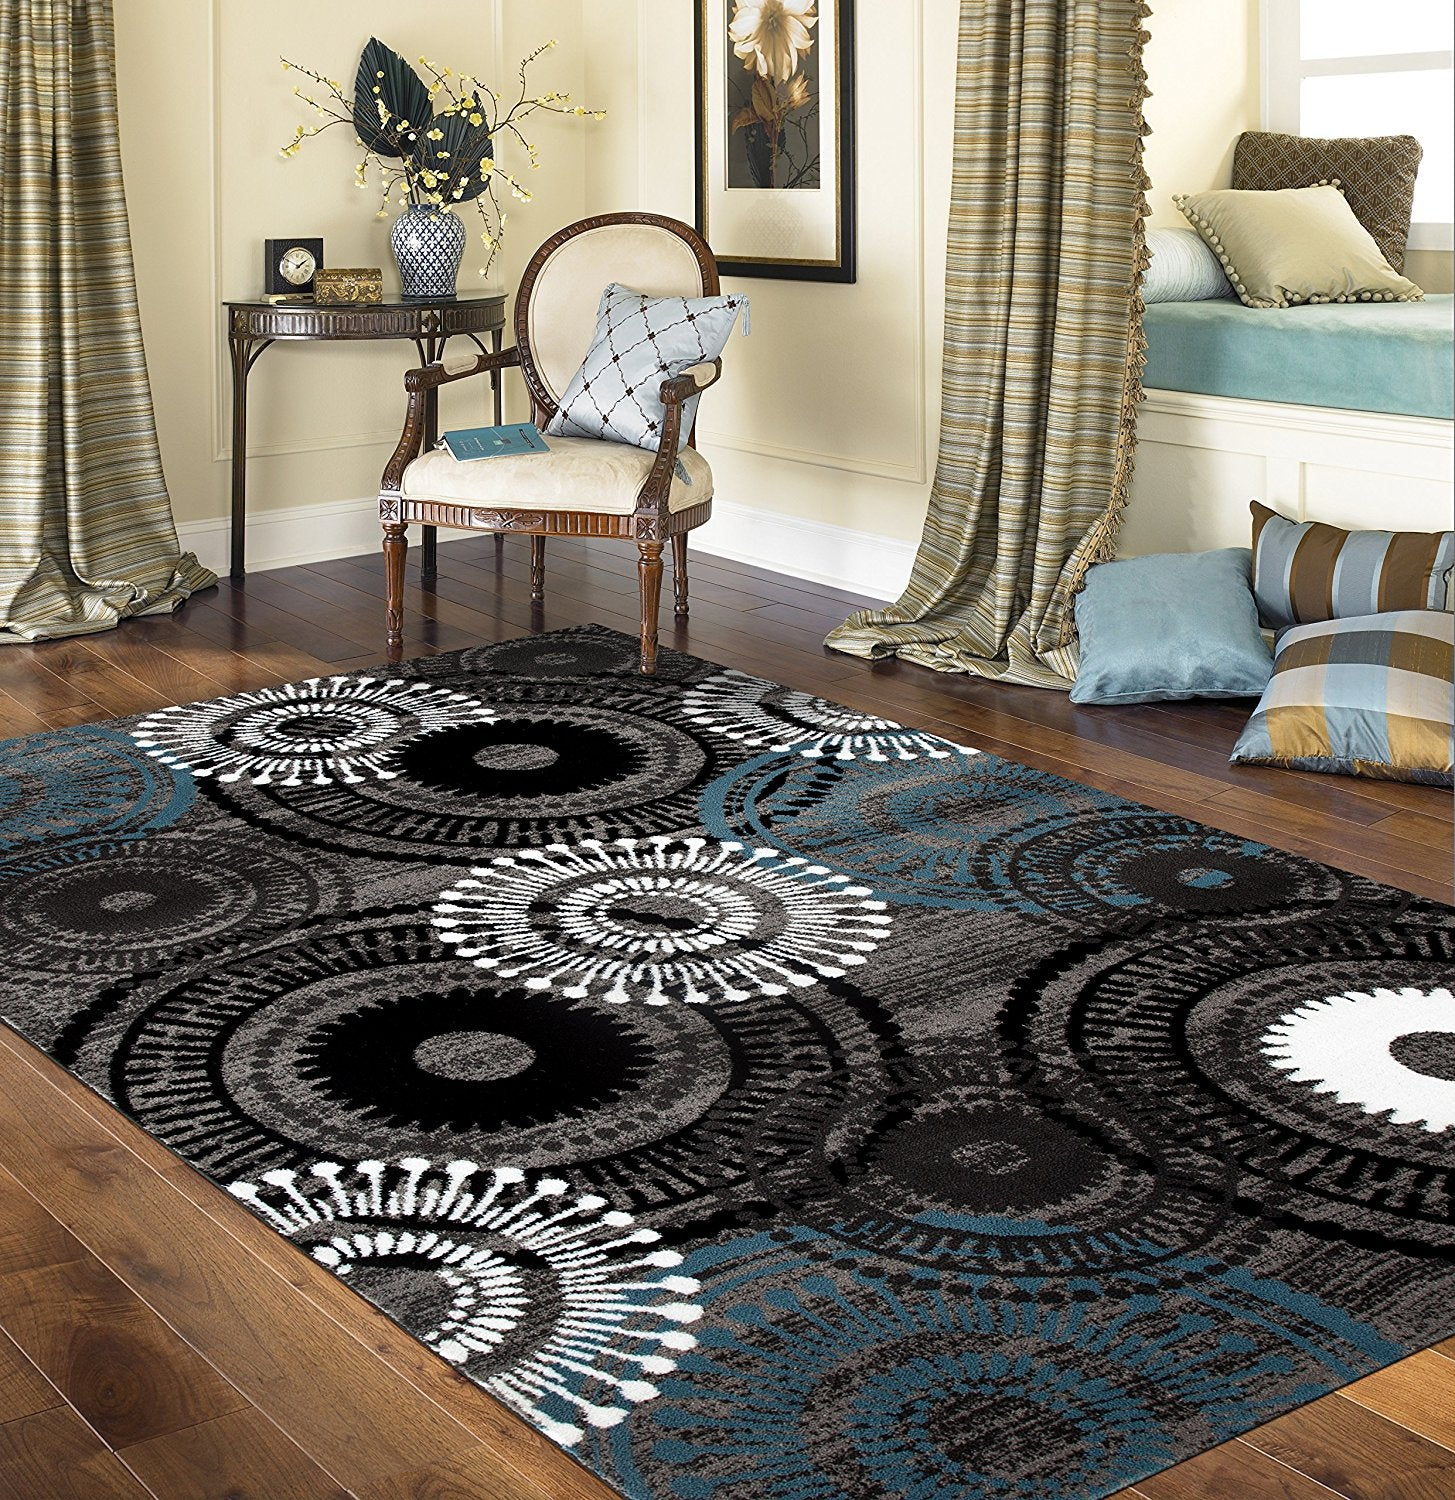 Picture of: Contemporary Circles Gray Grey Blue White Black Area Rug Modern Rugs And Decor